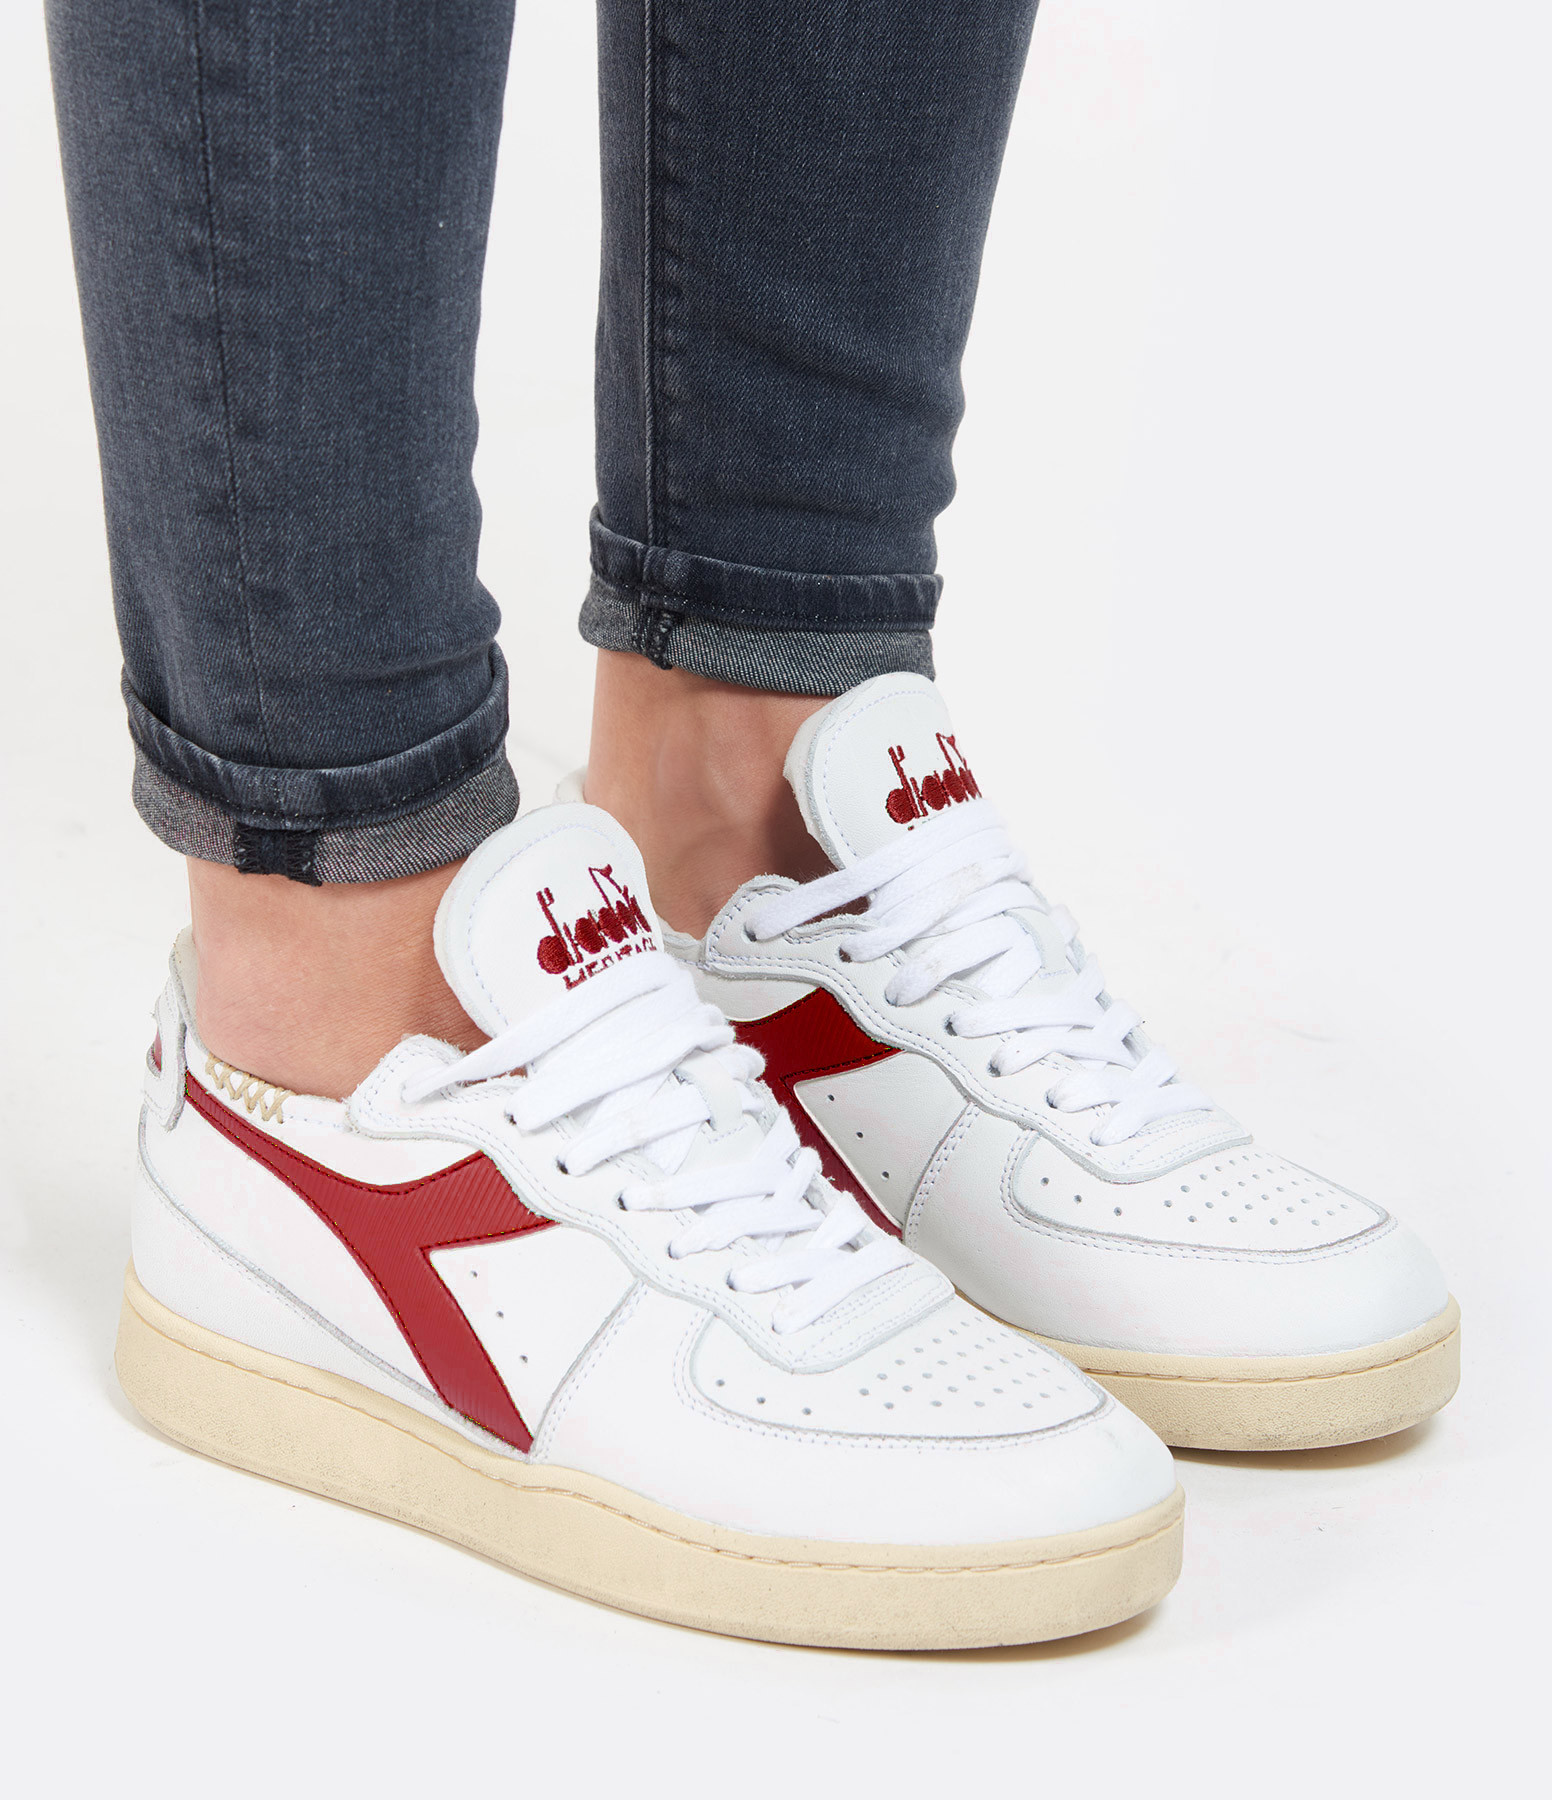 DIADORA - Baskets Mi Basket Row Cut Cuir Blanc Rouge